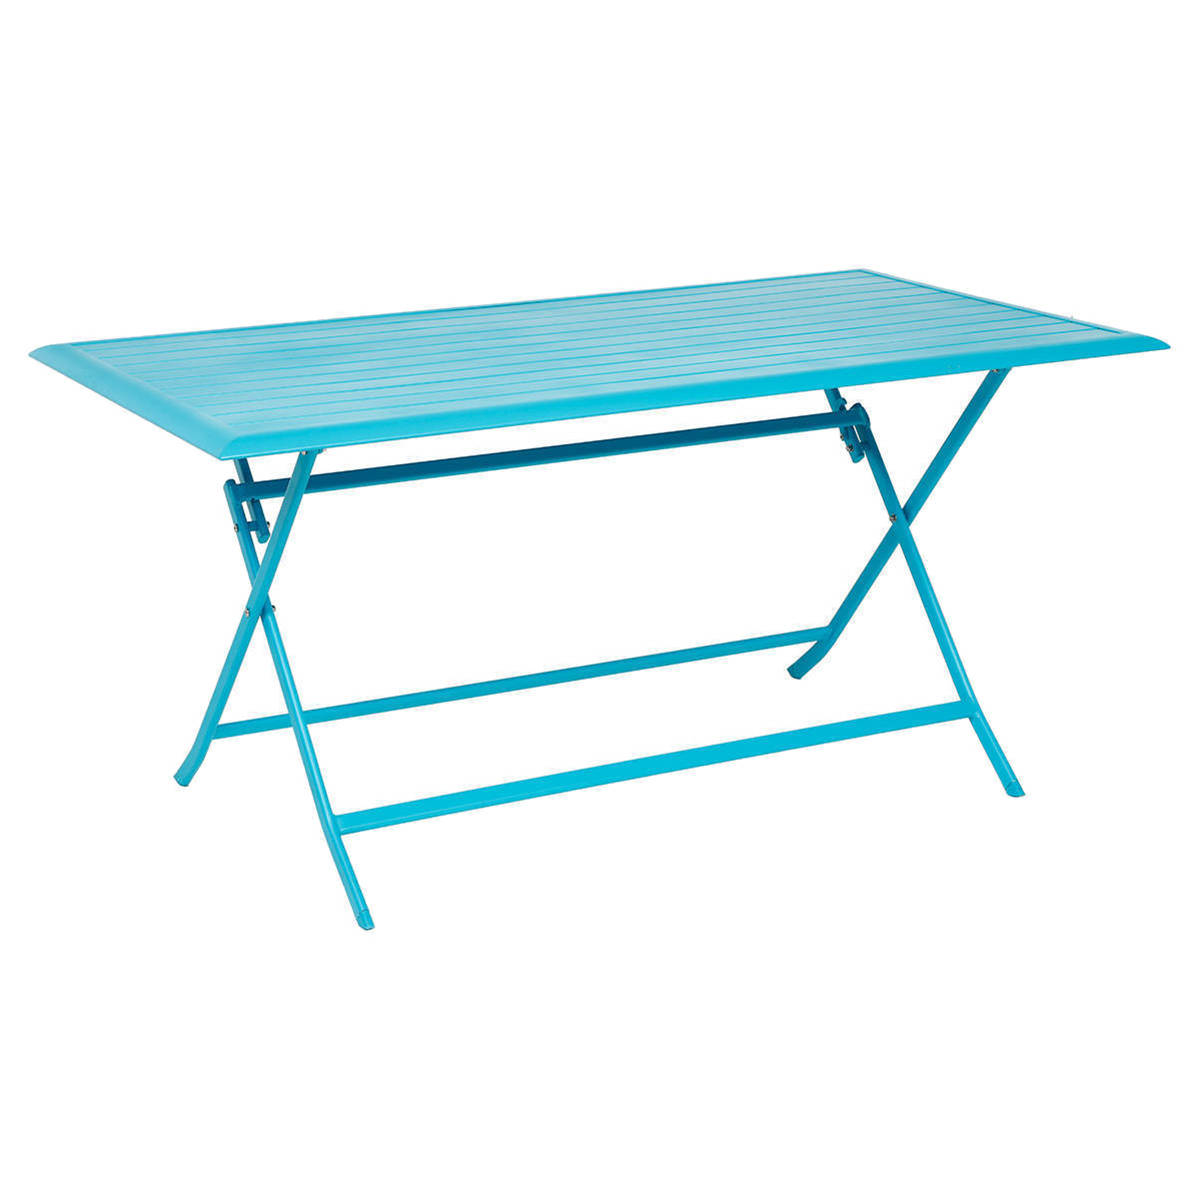 Catgorie table de jardin page 13 du guide et comparateur d for Table extensible blooma